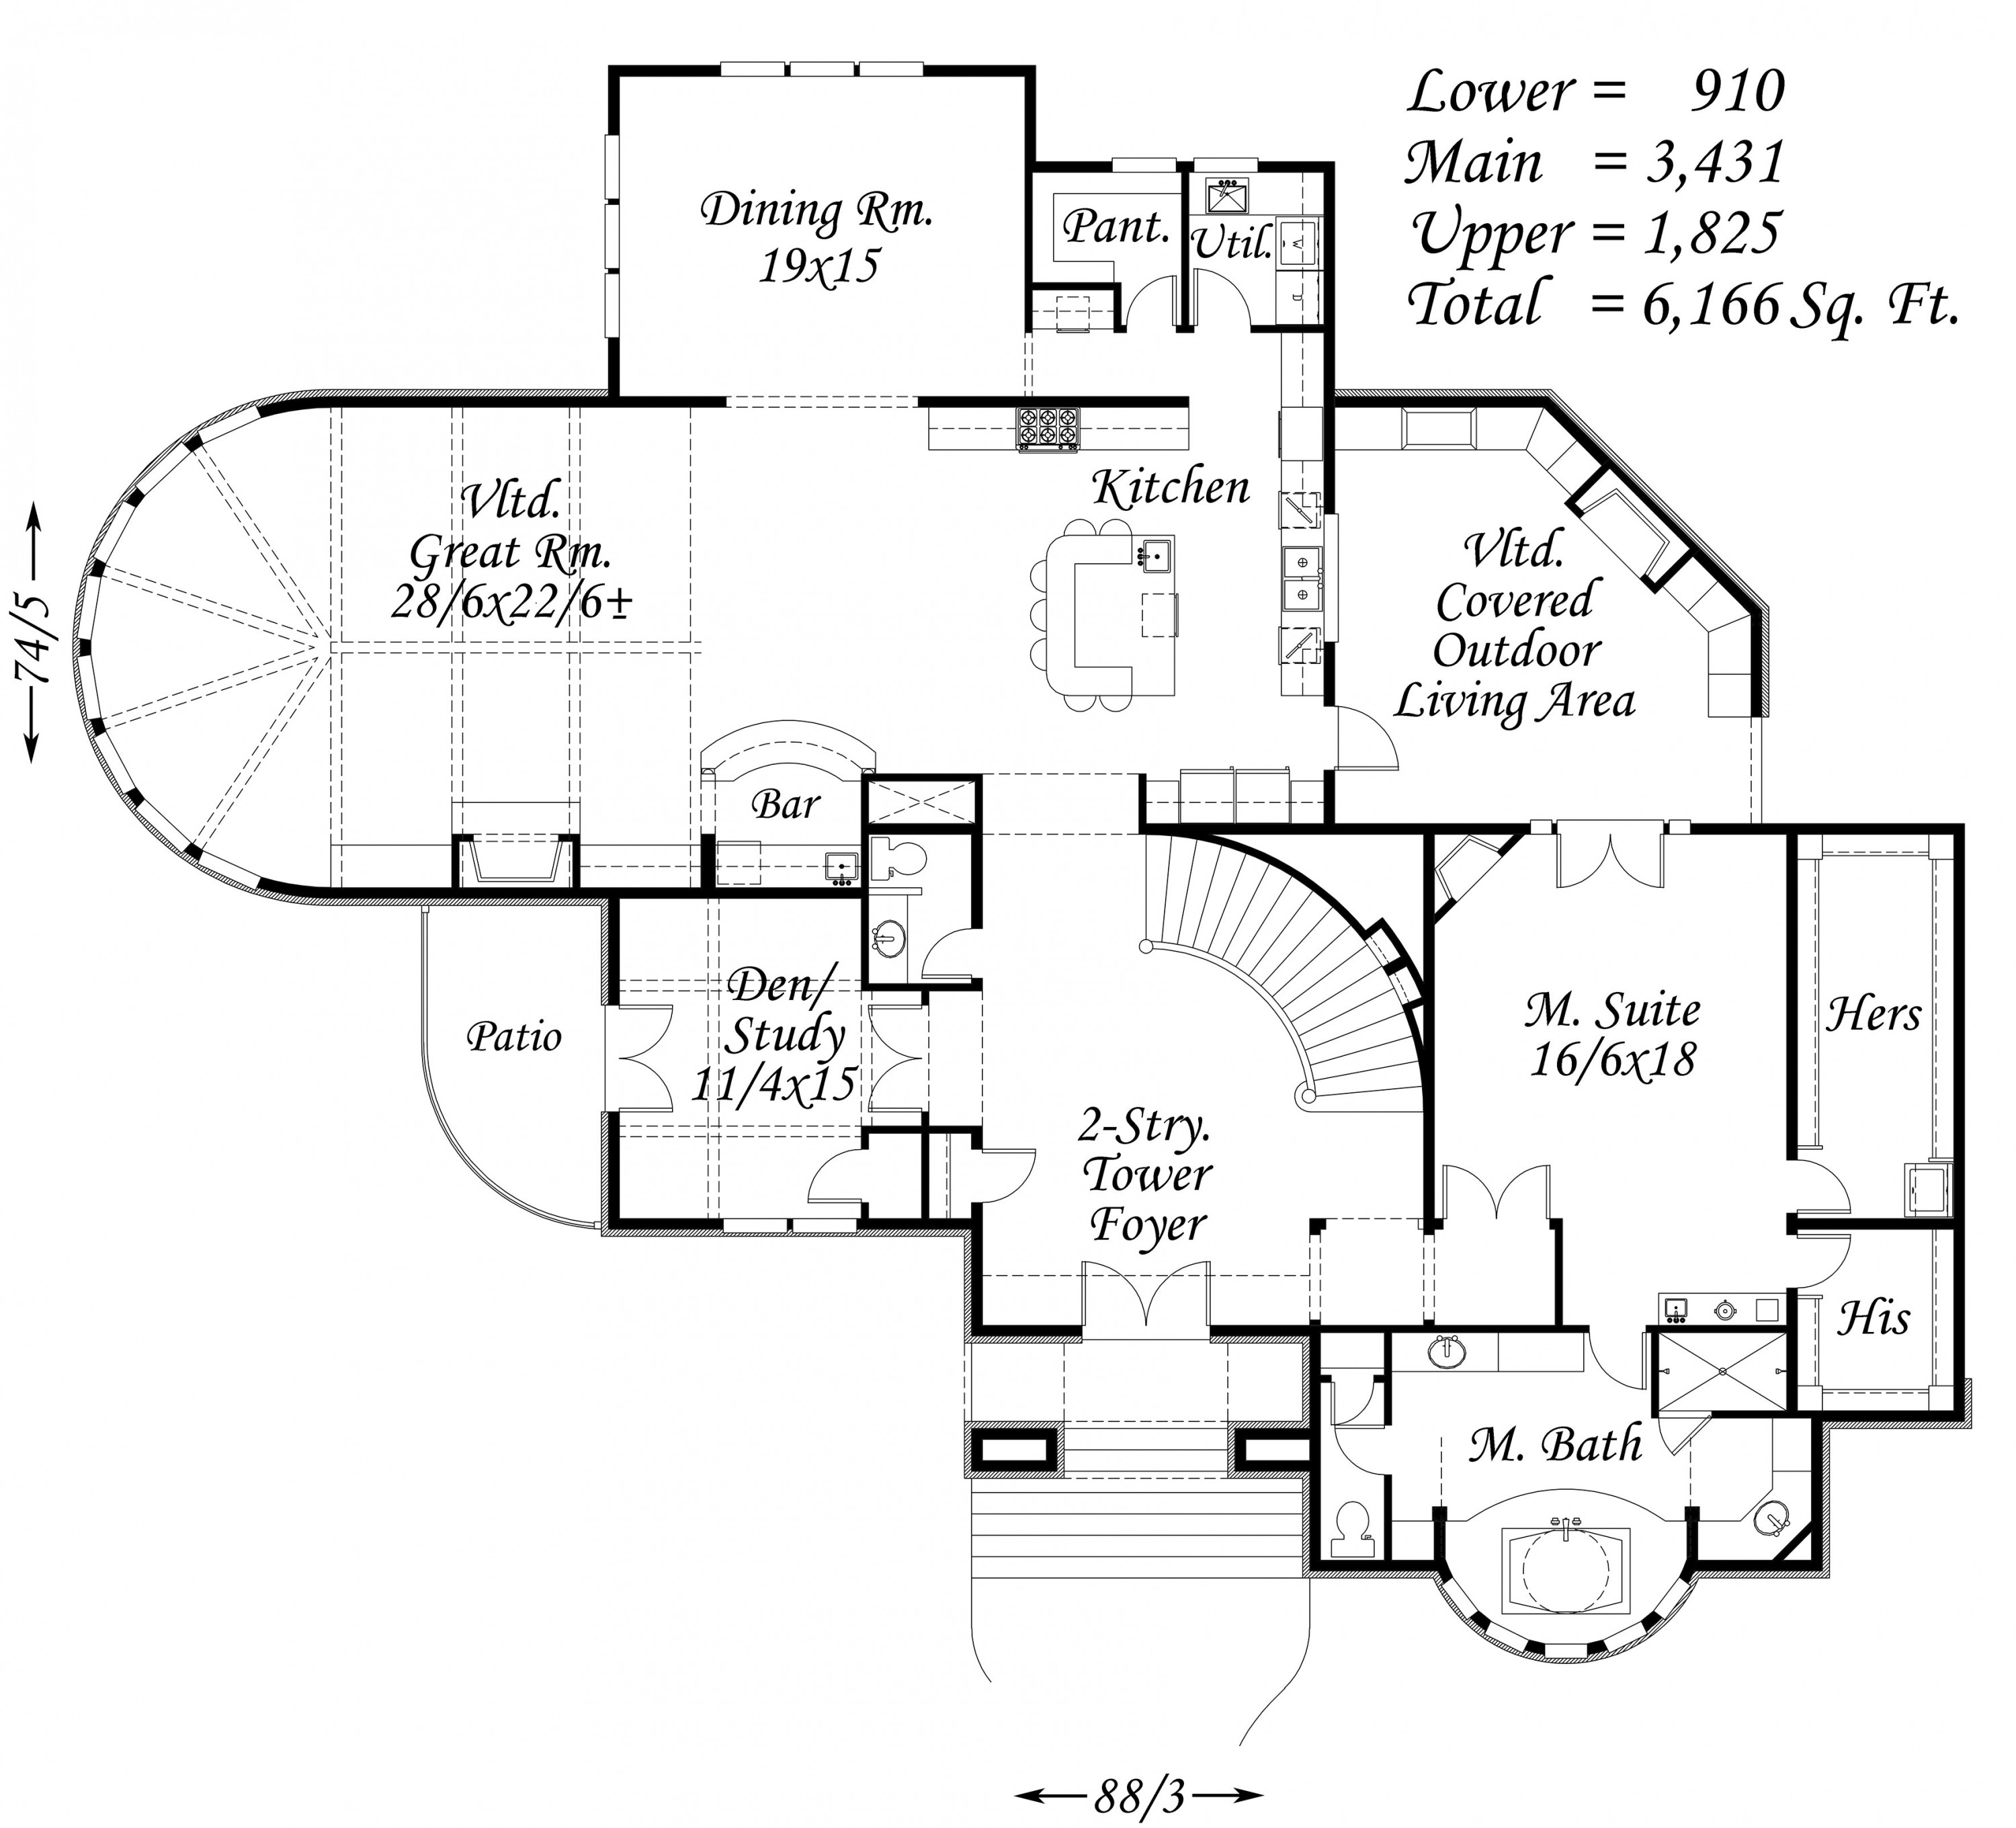 6166 house plan mediterranean house plans old world for Old world floor plans